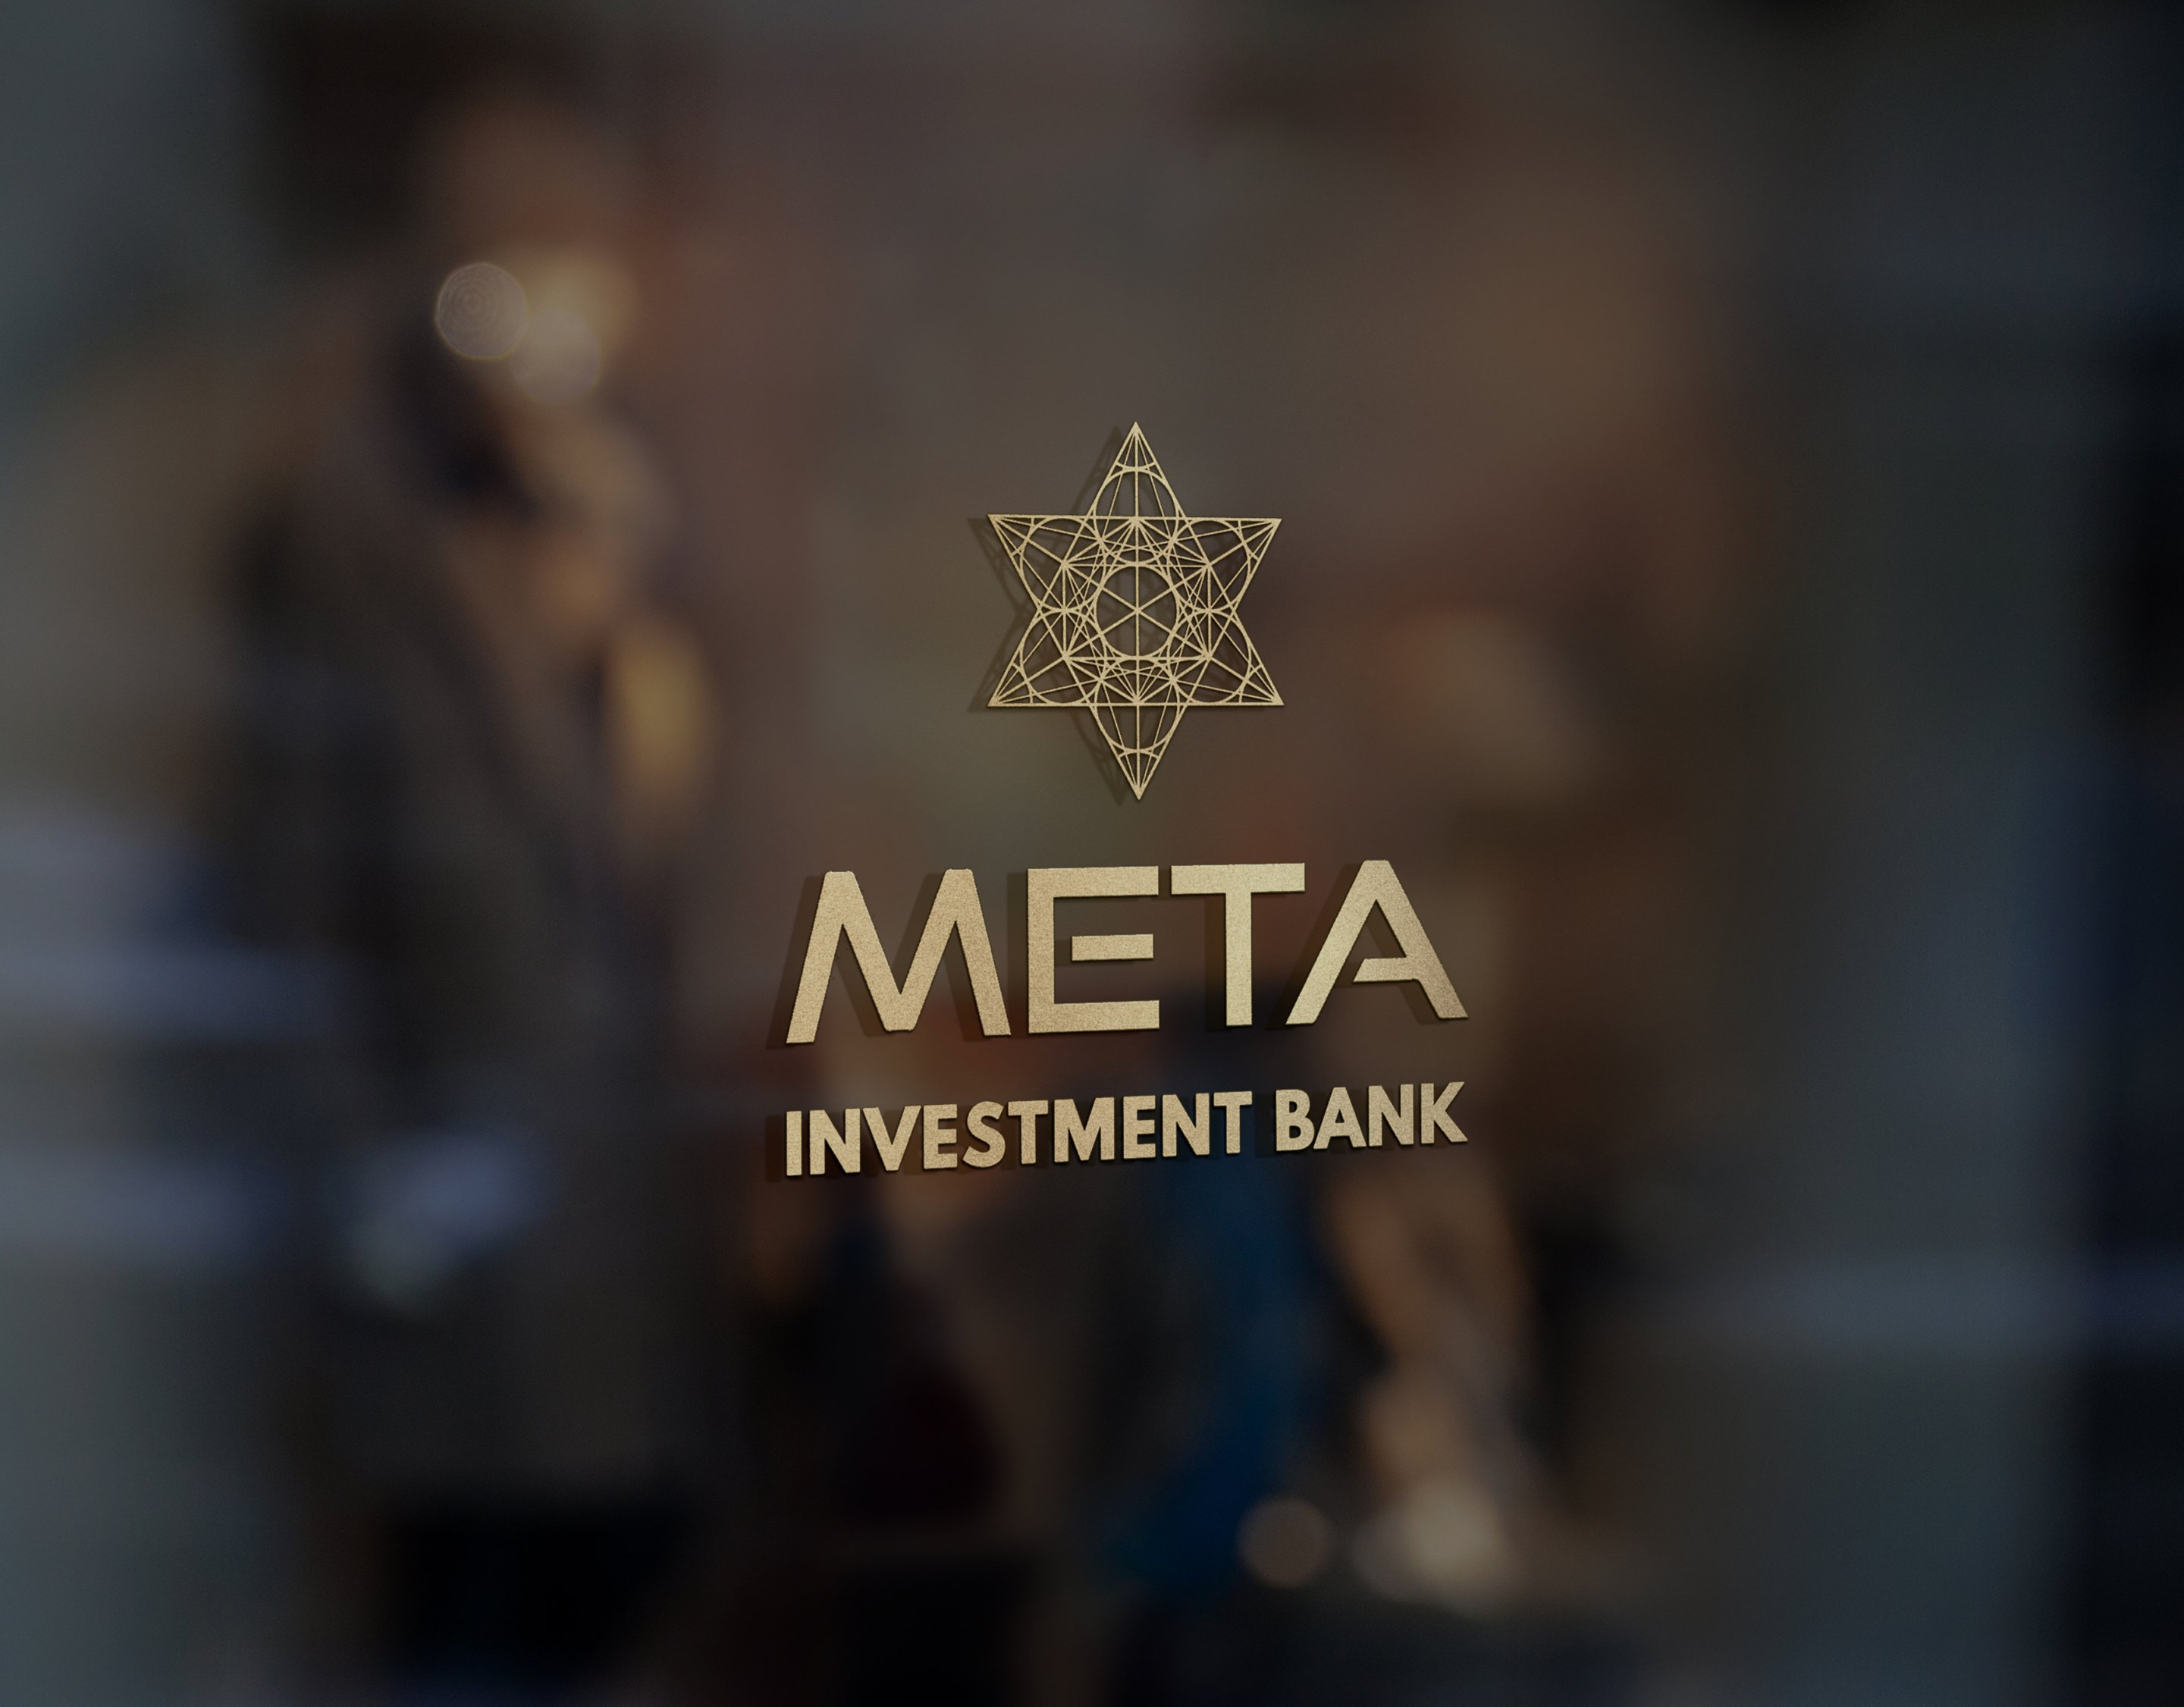 meta1-investment-bank